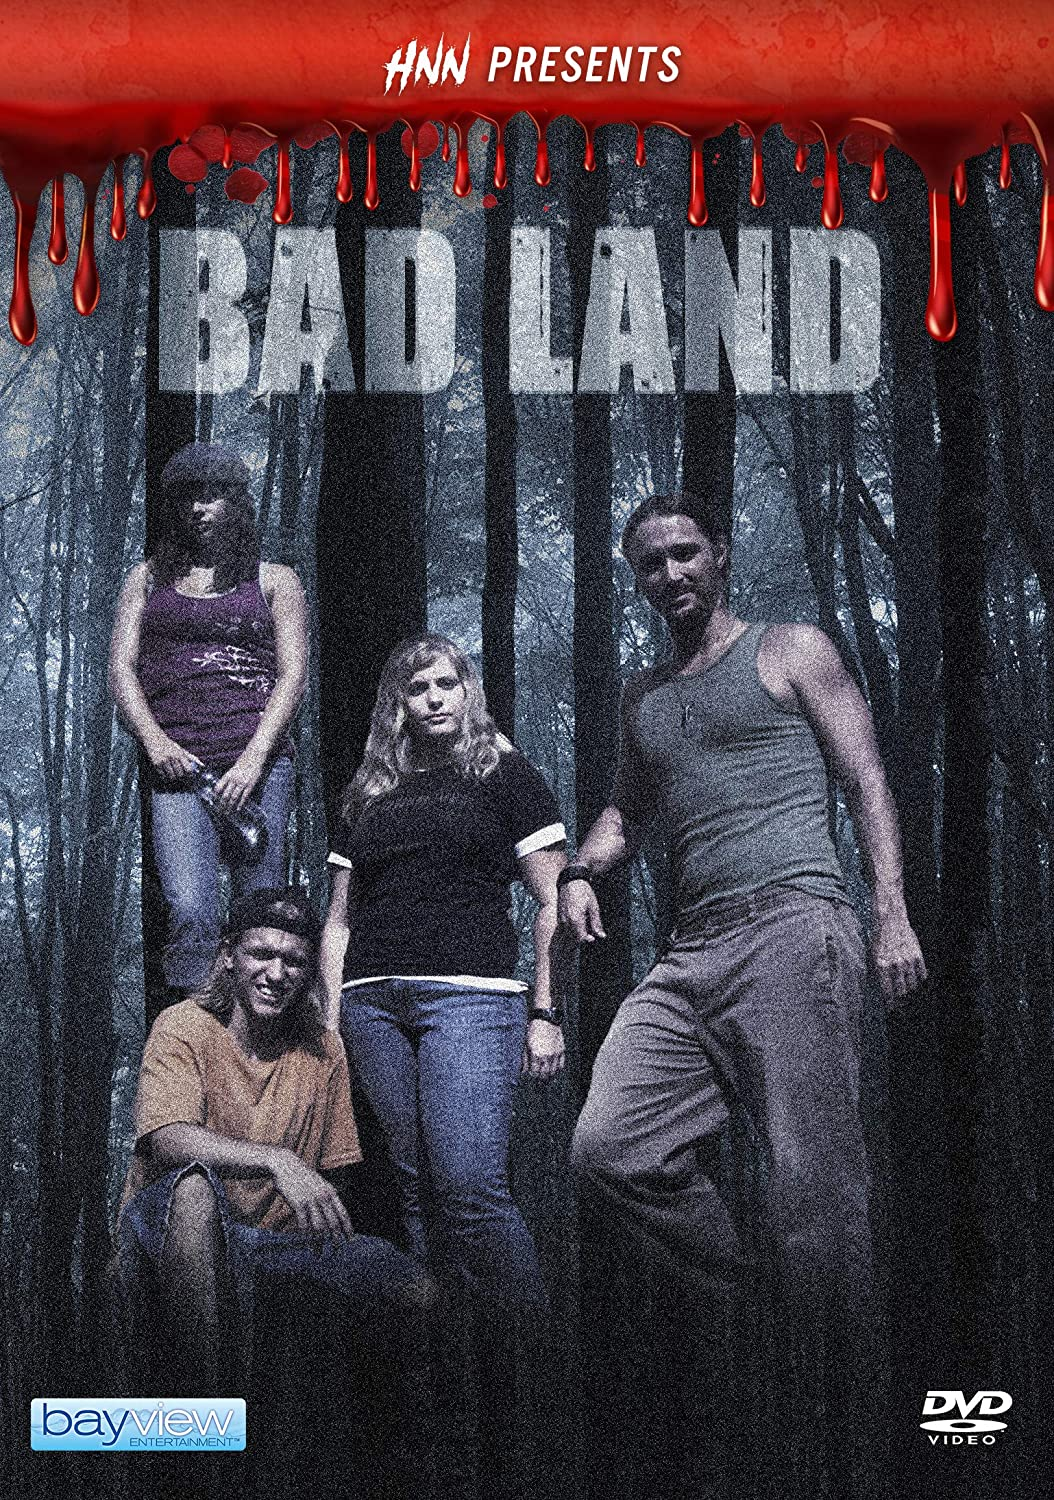 Official Trailer for HNN Presents: Bad Land